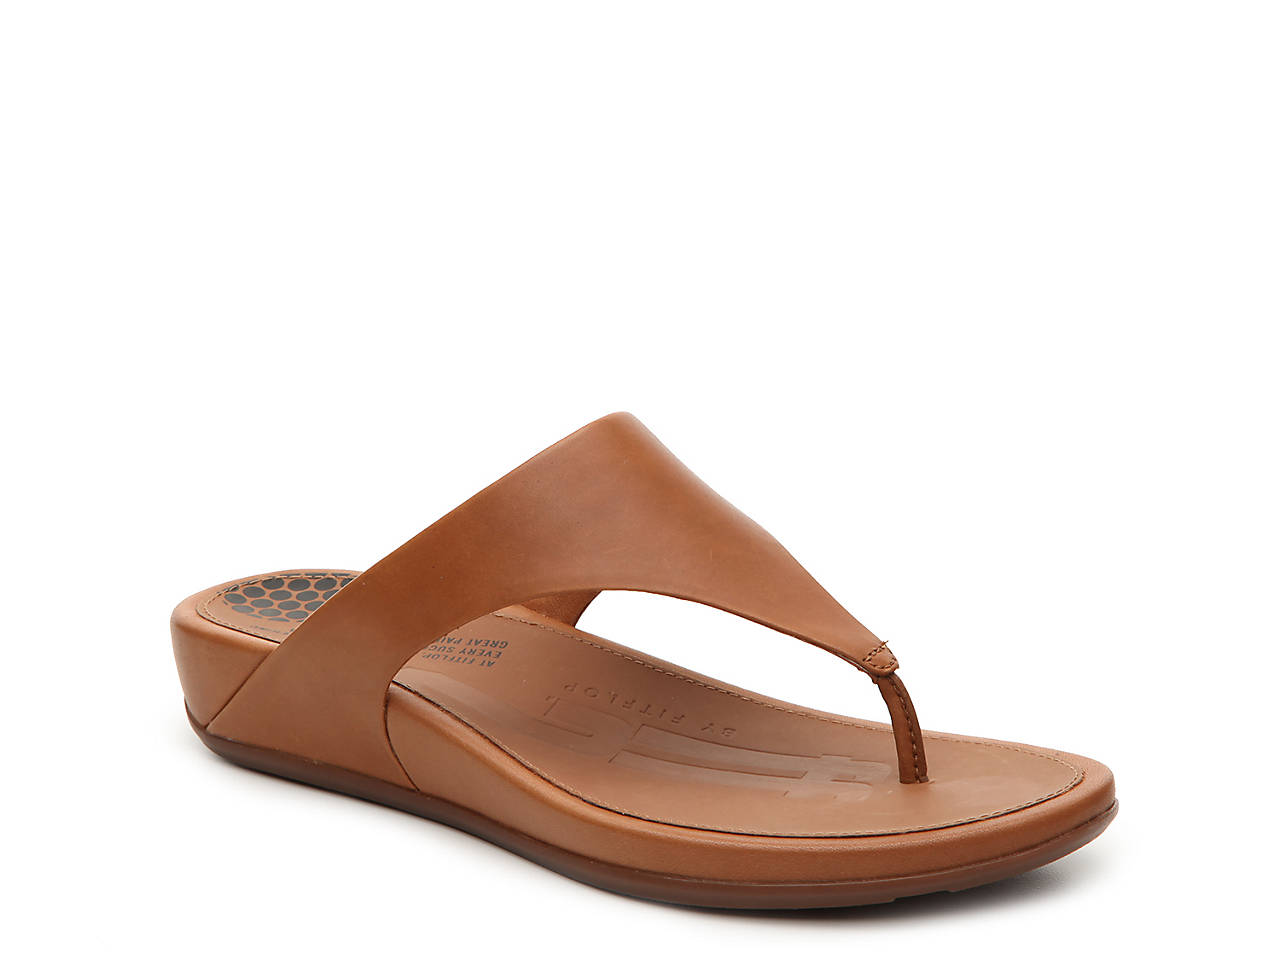 e21a58ee2247c6 FitFlop Banda Wedge Sandal Women s Shoes